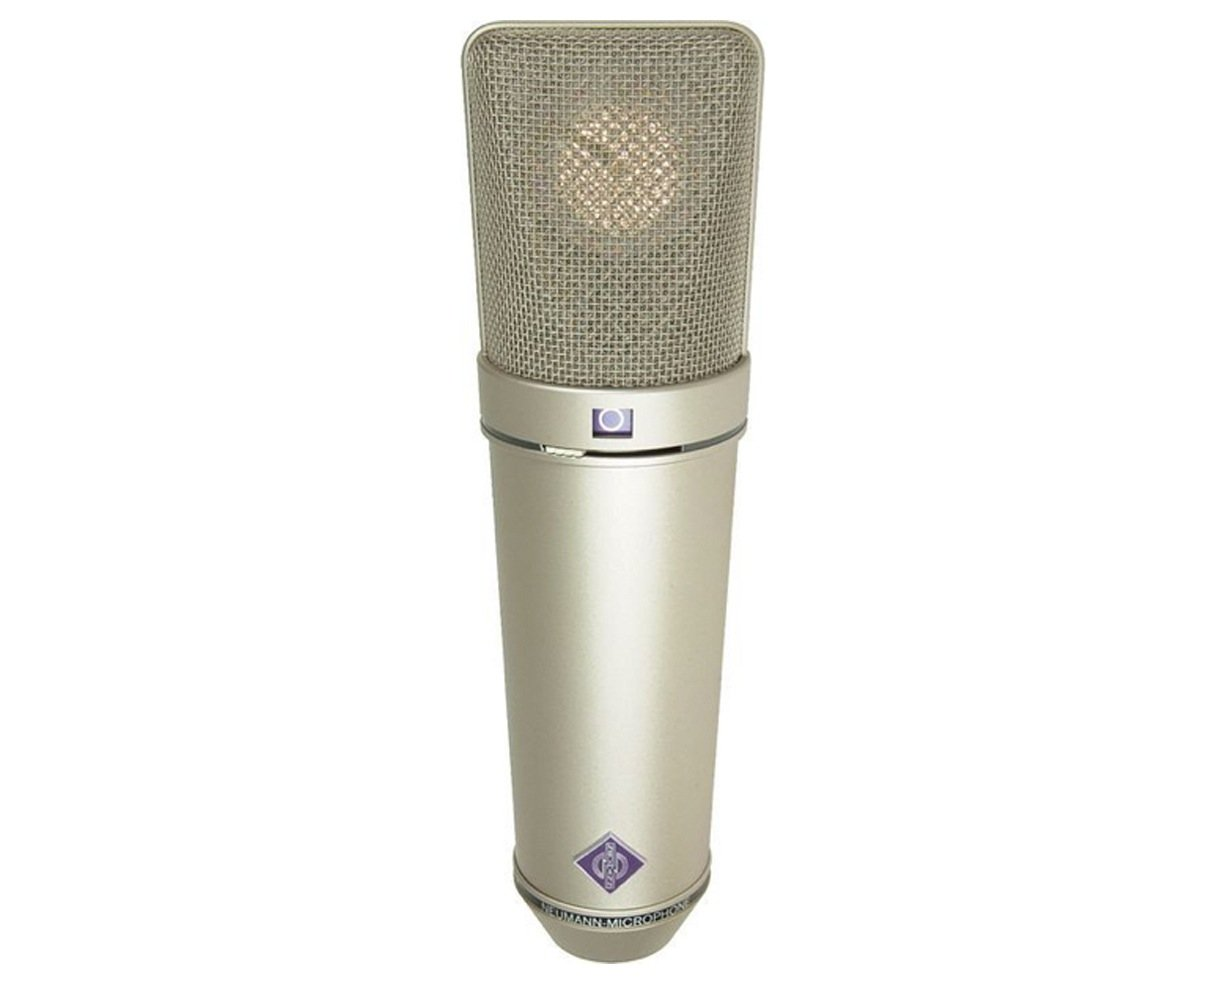 Multipattern Large Dual Diaphragm Condenser Microphone in Satin Nickel Finish with Wood Case, EA 87 Shock Mount, WS 87 Windscreen, & IC 3/25 Cable